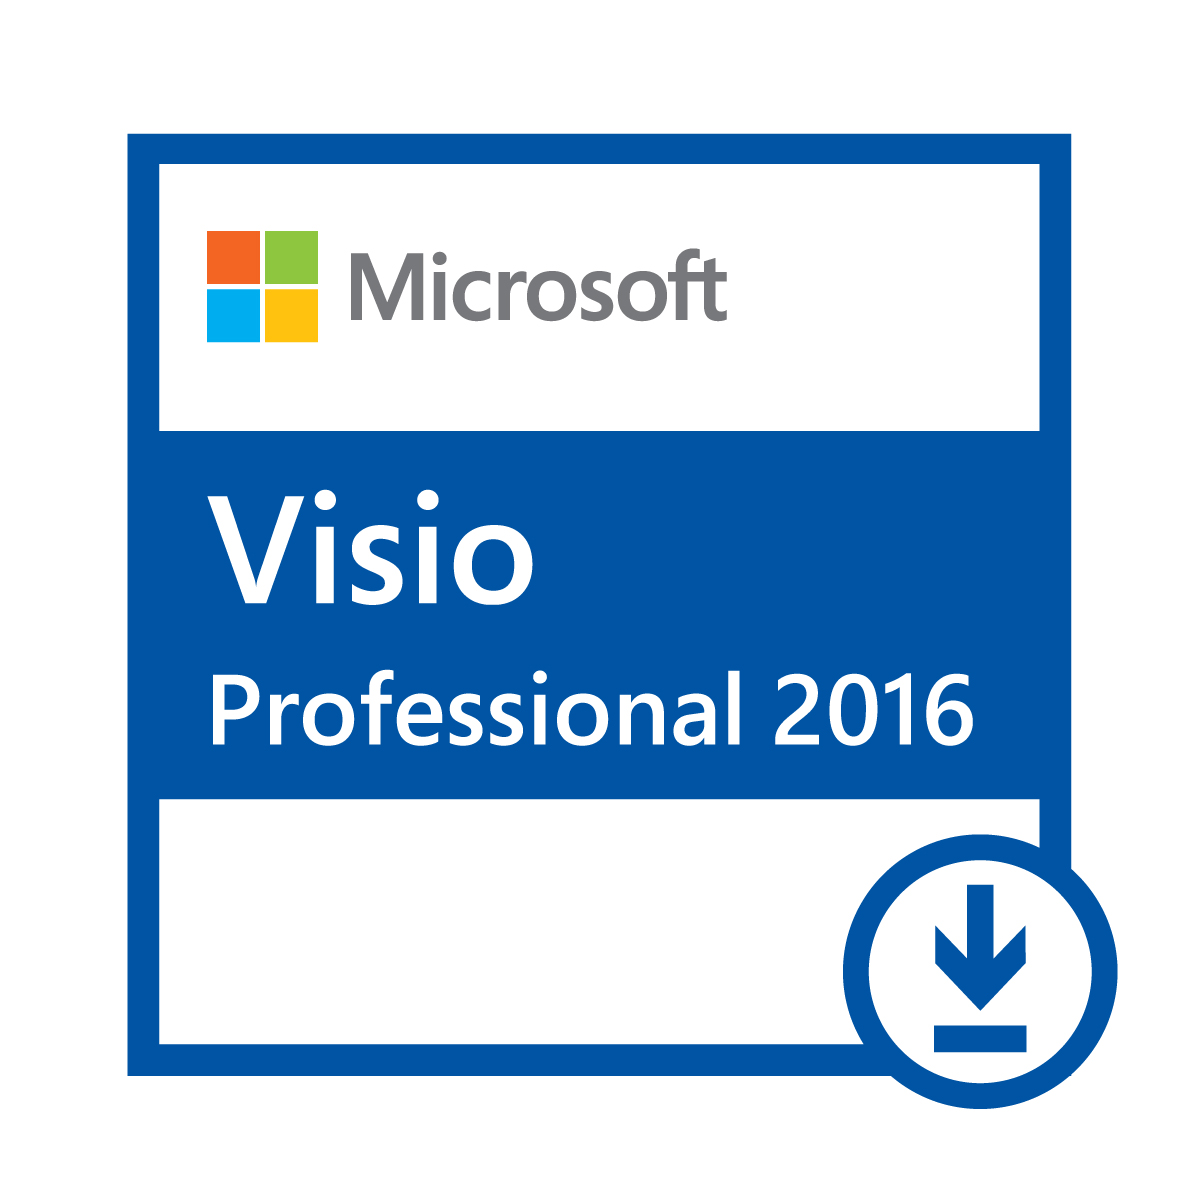 Ms Office Visio Professional 2010 Price